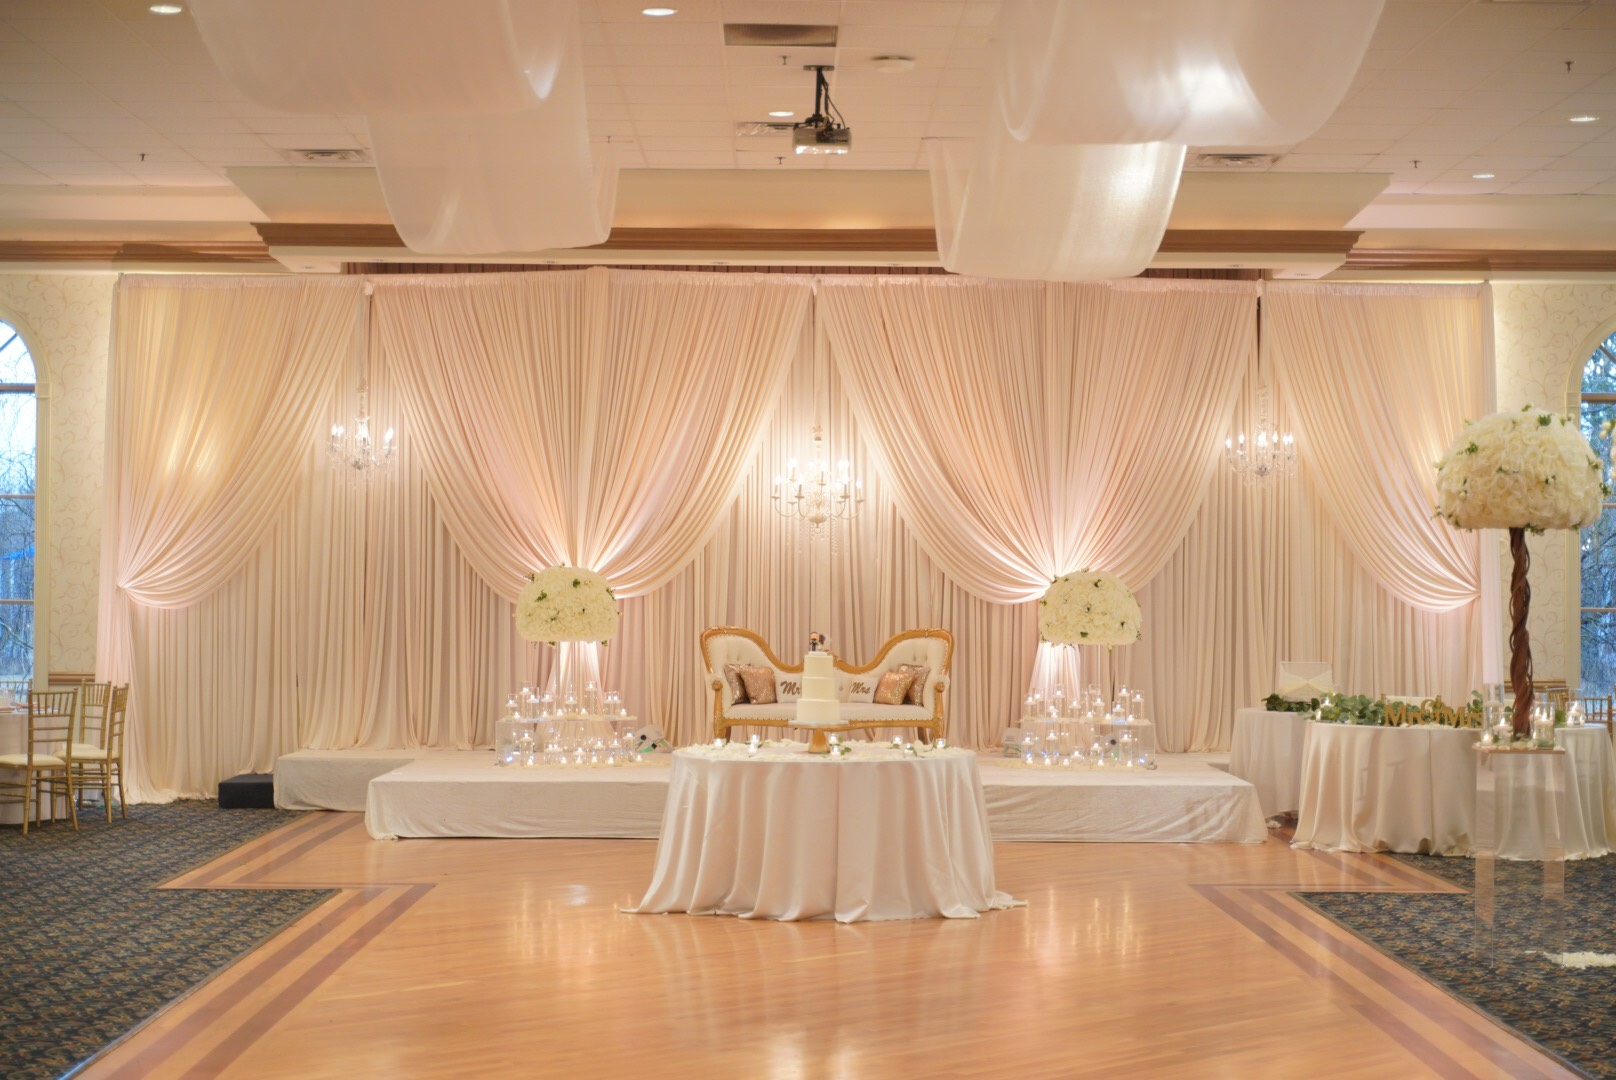 Chicago Backdrops Draping Satin Chair Event Design Decor Rental In Chicago I Wedding Decoration Rental I Balloon Art I Tent Rental In Naperville